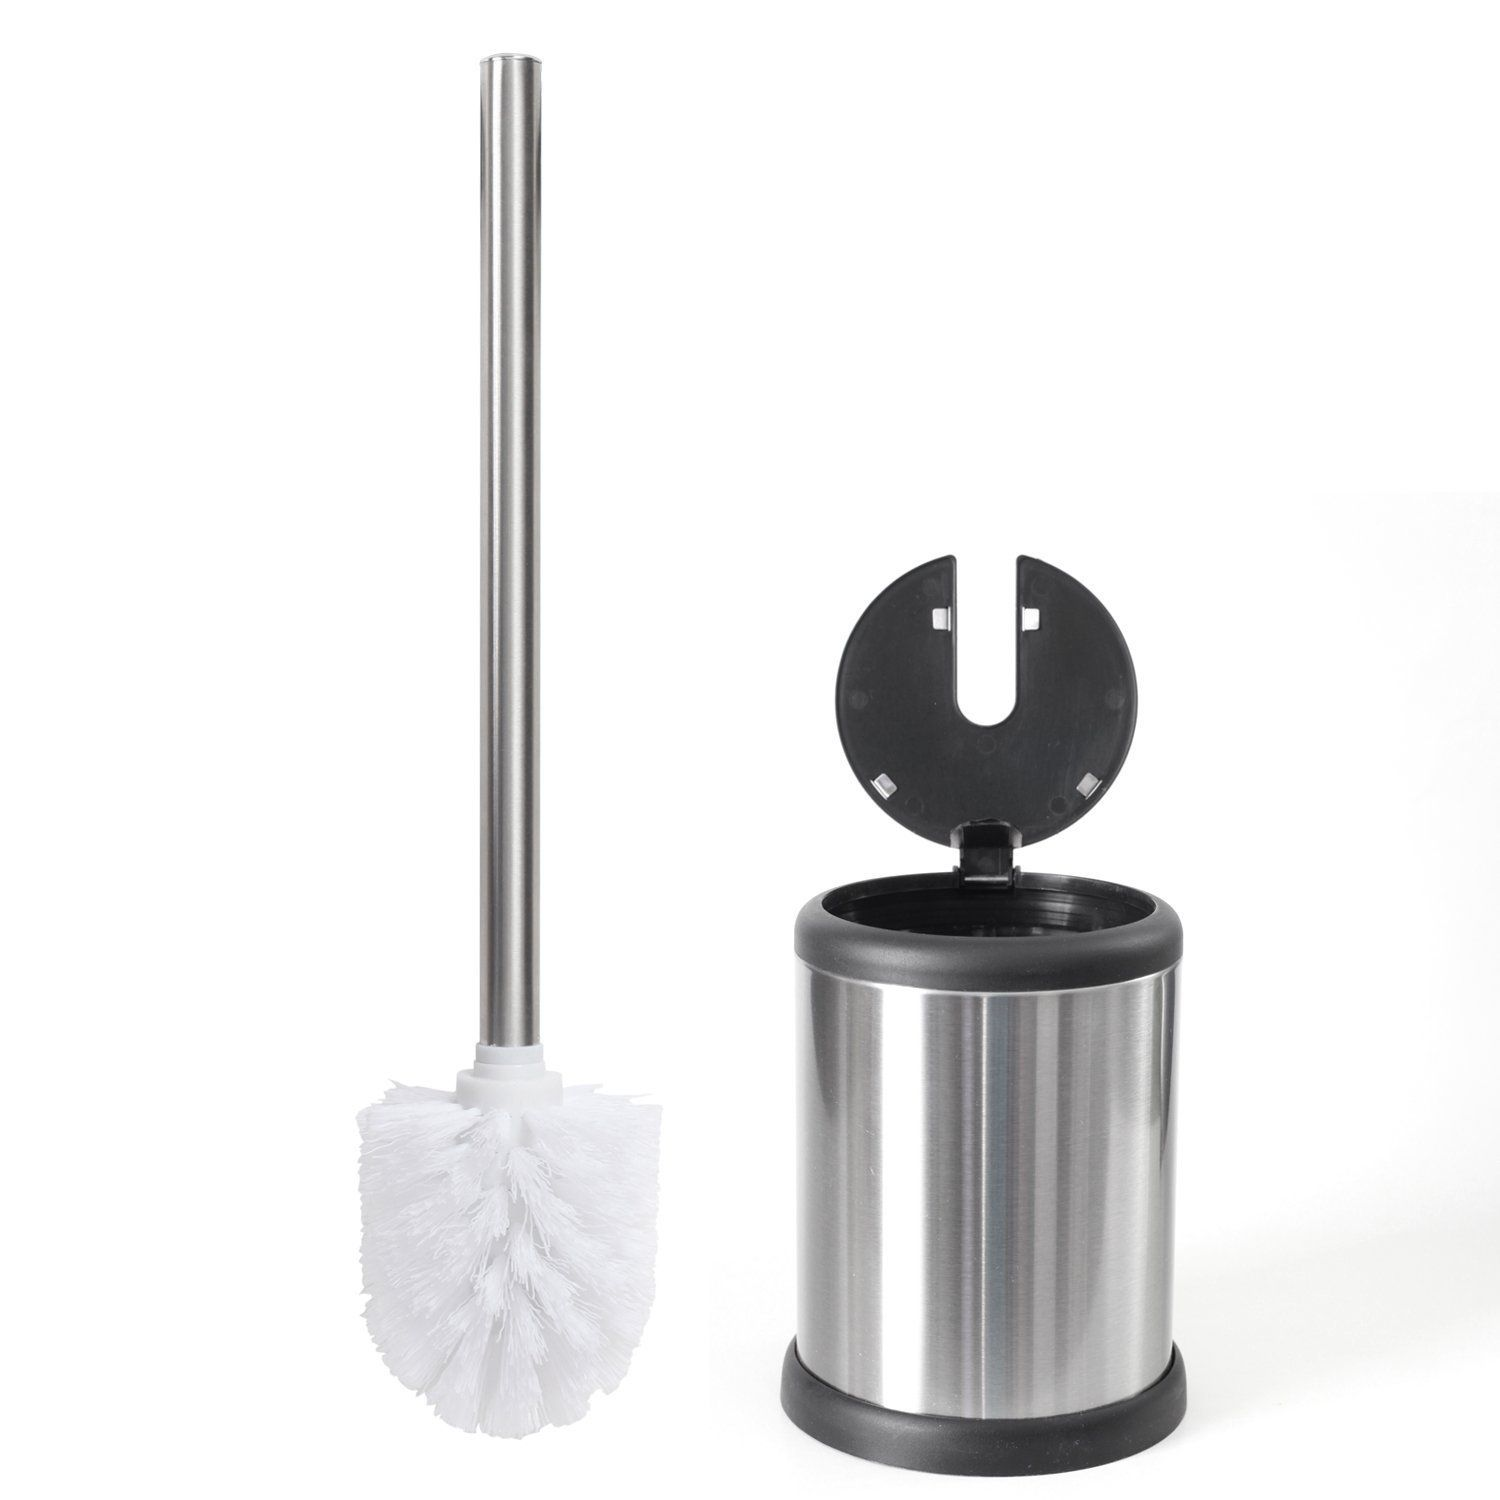 Toilet Brush And Chrome Finish Holder With A Lid For Easy Pull